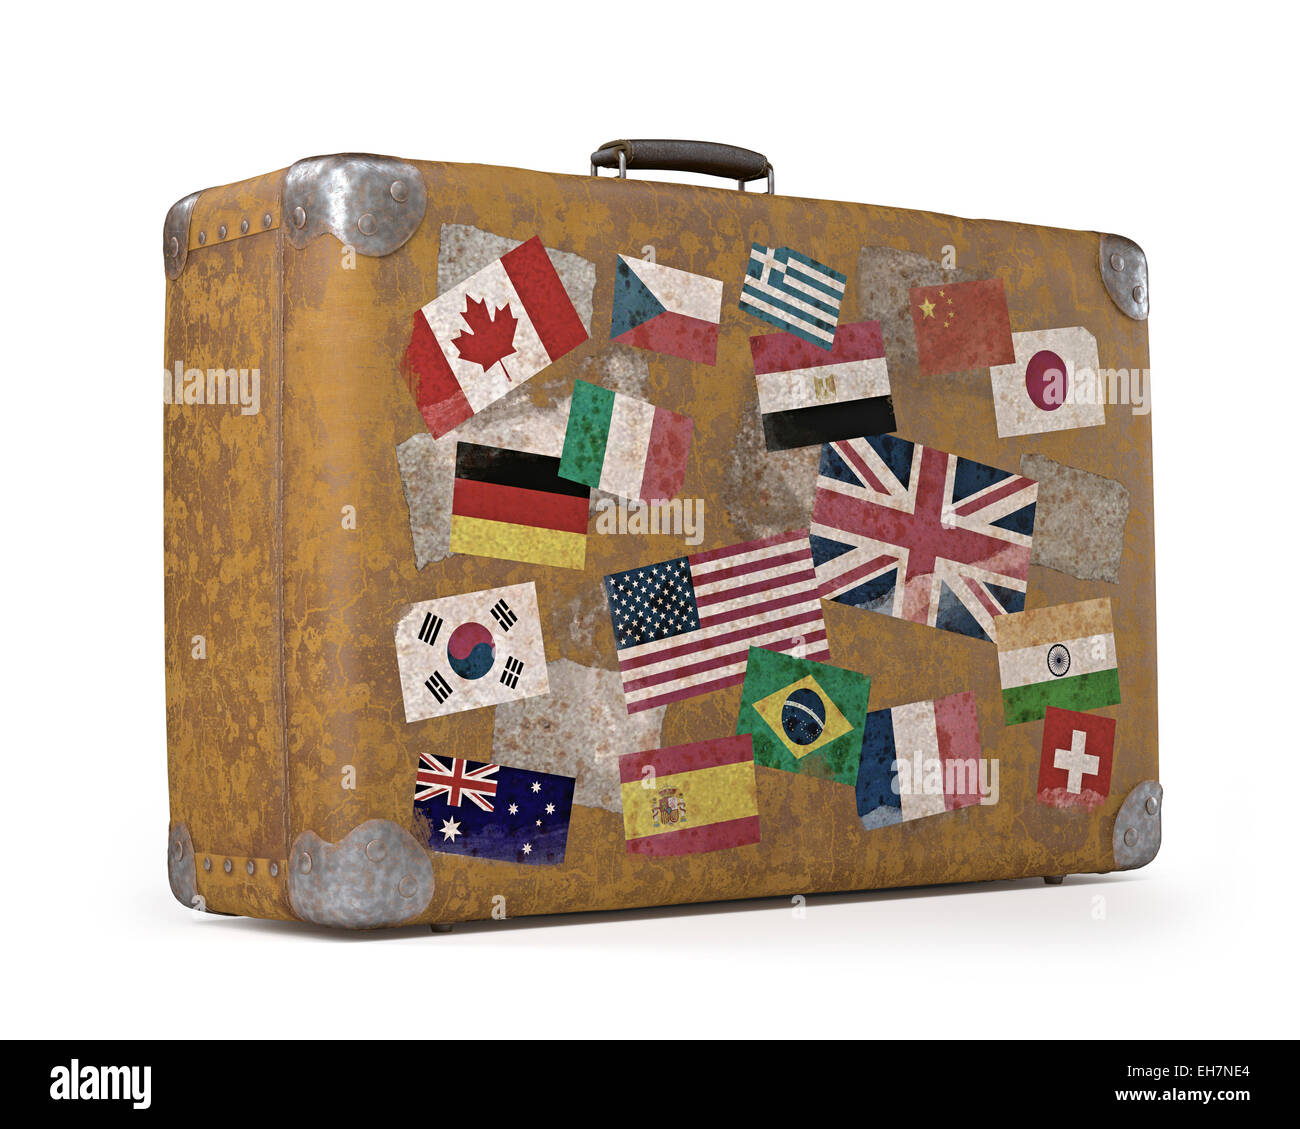 vintage suitcase with stickers stock photo 79461148 alamy